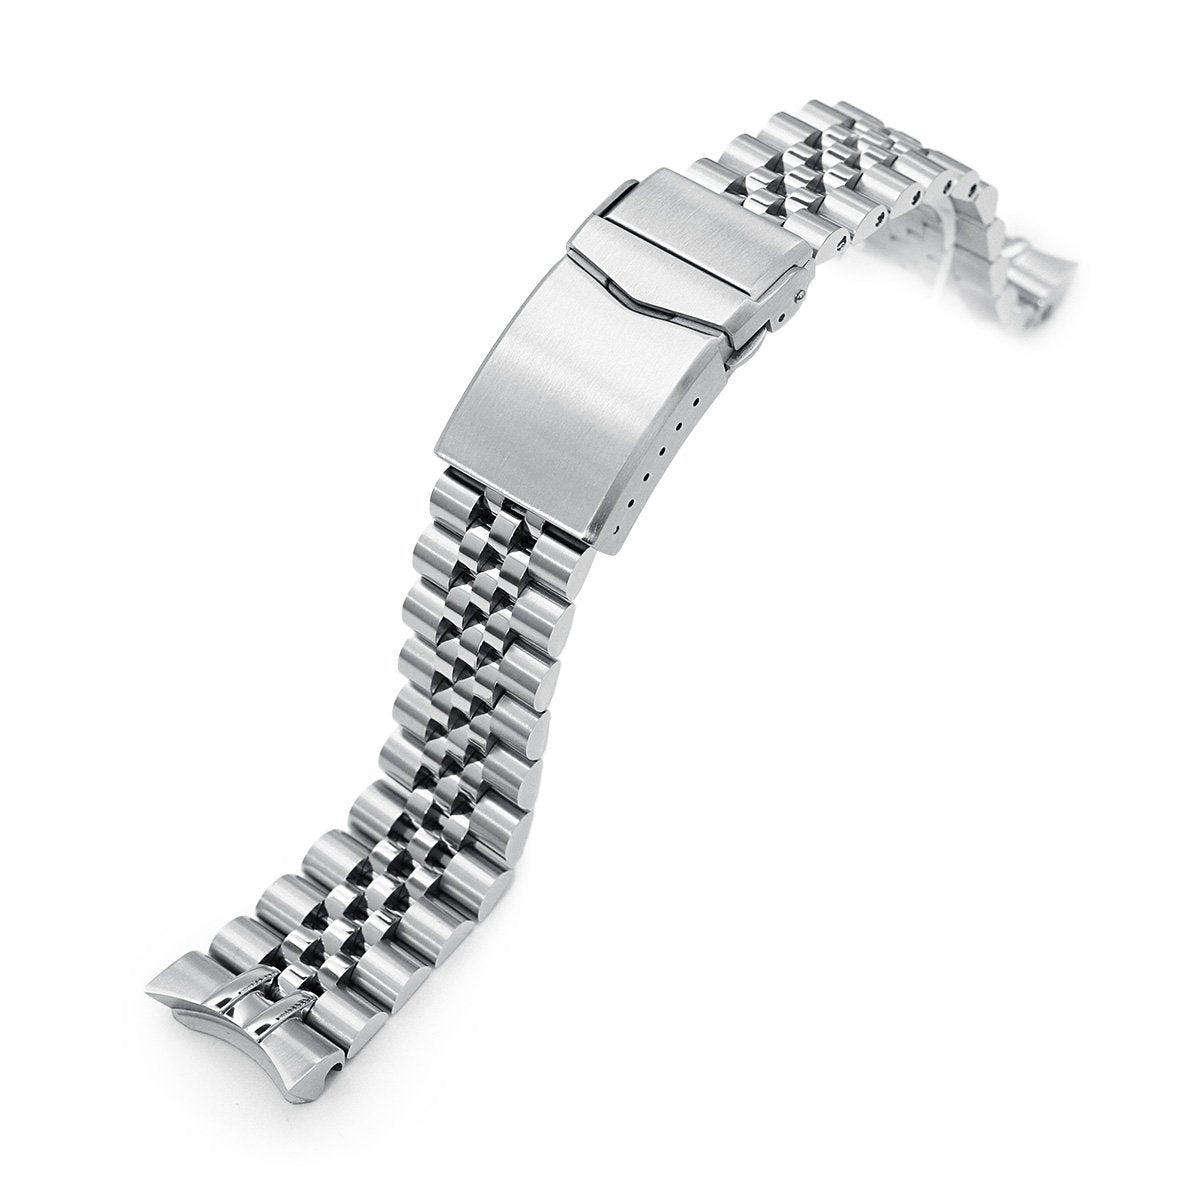 20mm Super-J Louis 316L Stainless Steel Watch Bracelet for Seiko SKX013 V-Clasp Brushed Strapcode Watch Bands